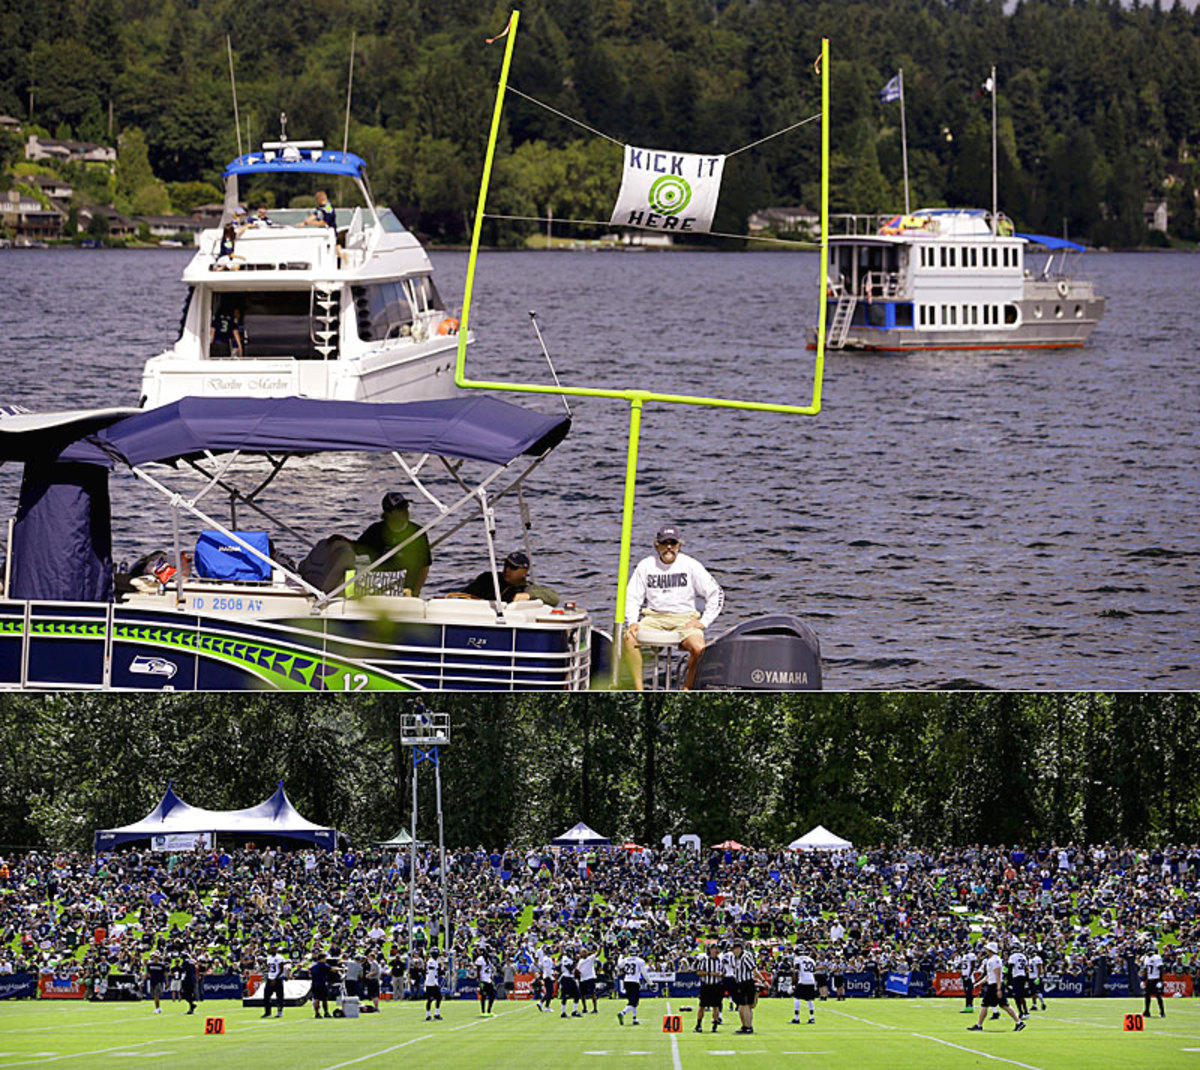 Scenes from the Seahawks' sold-out training camp on Lake Washington. (AP :: 2)